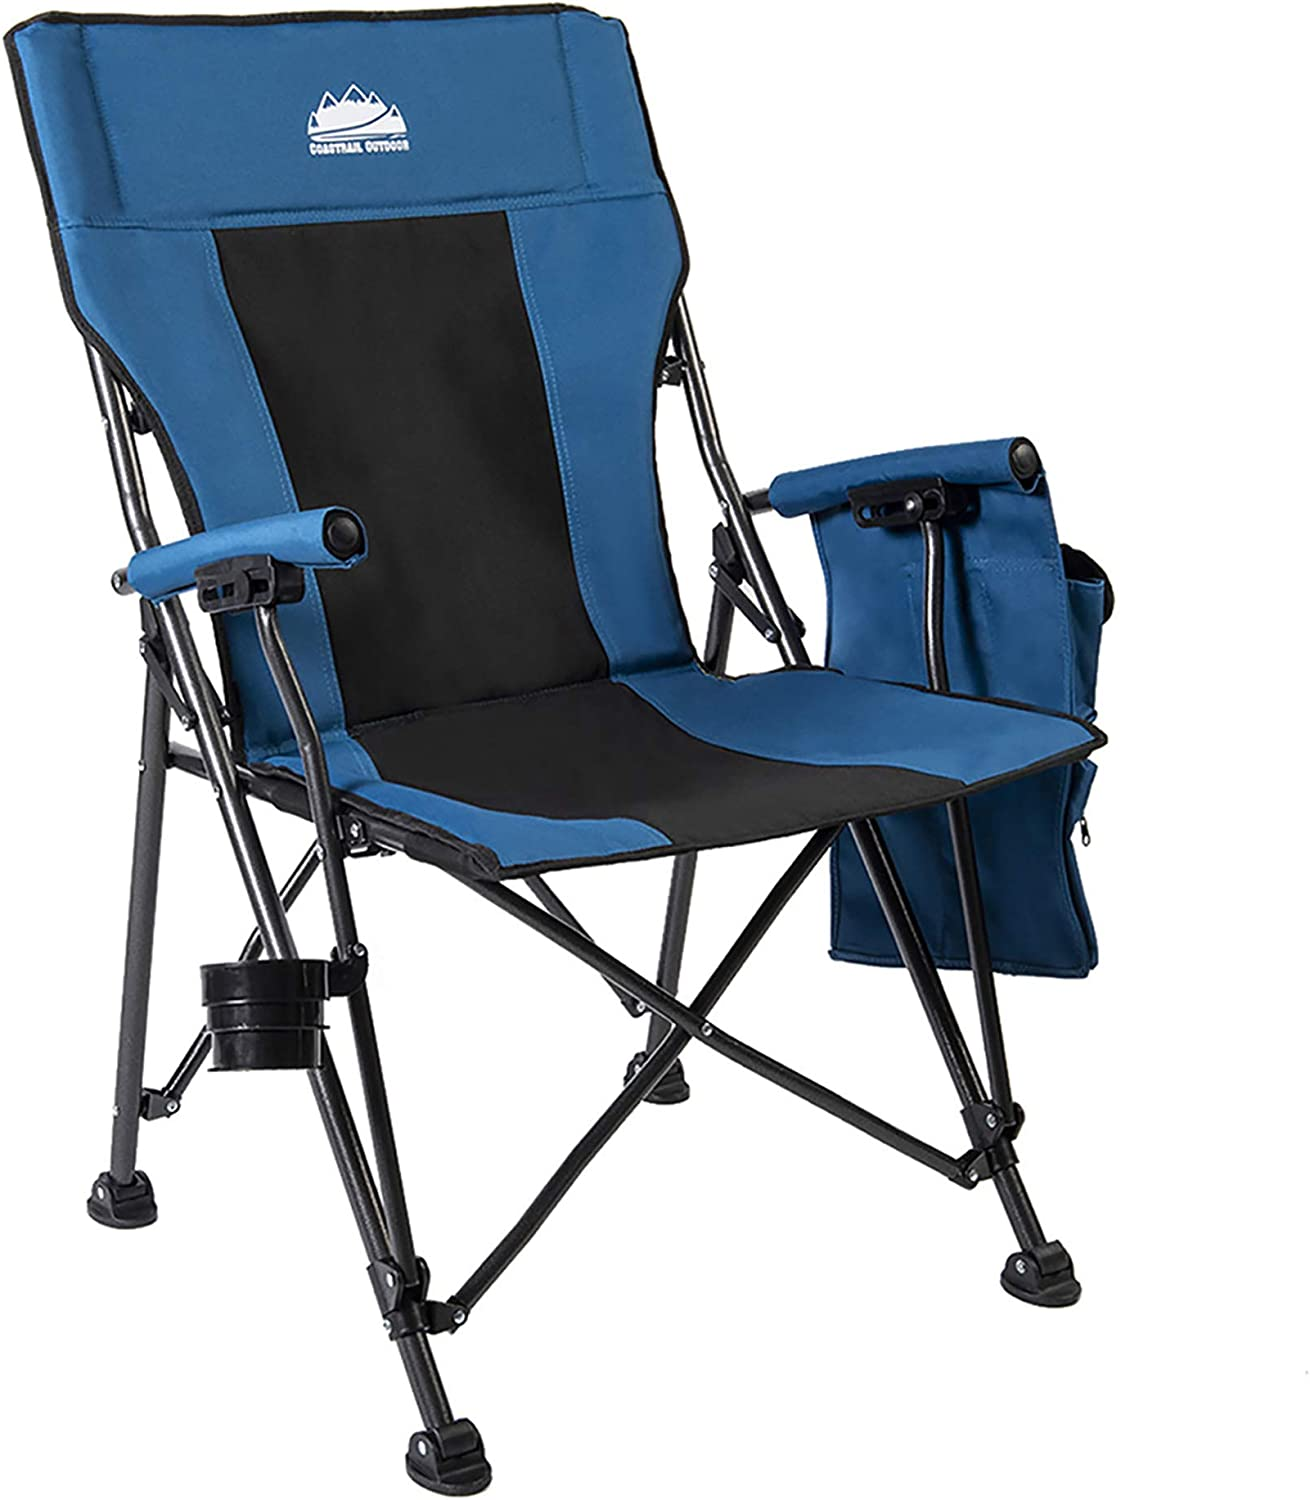 FHJZXDGHNXFGH Modern Ultralight Heavy Duty Folding Chair Seat For Outdoor Camping Fishing Picnic Beach Activities With Bag